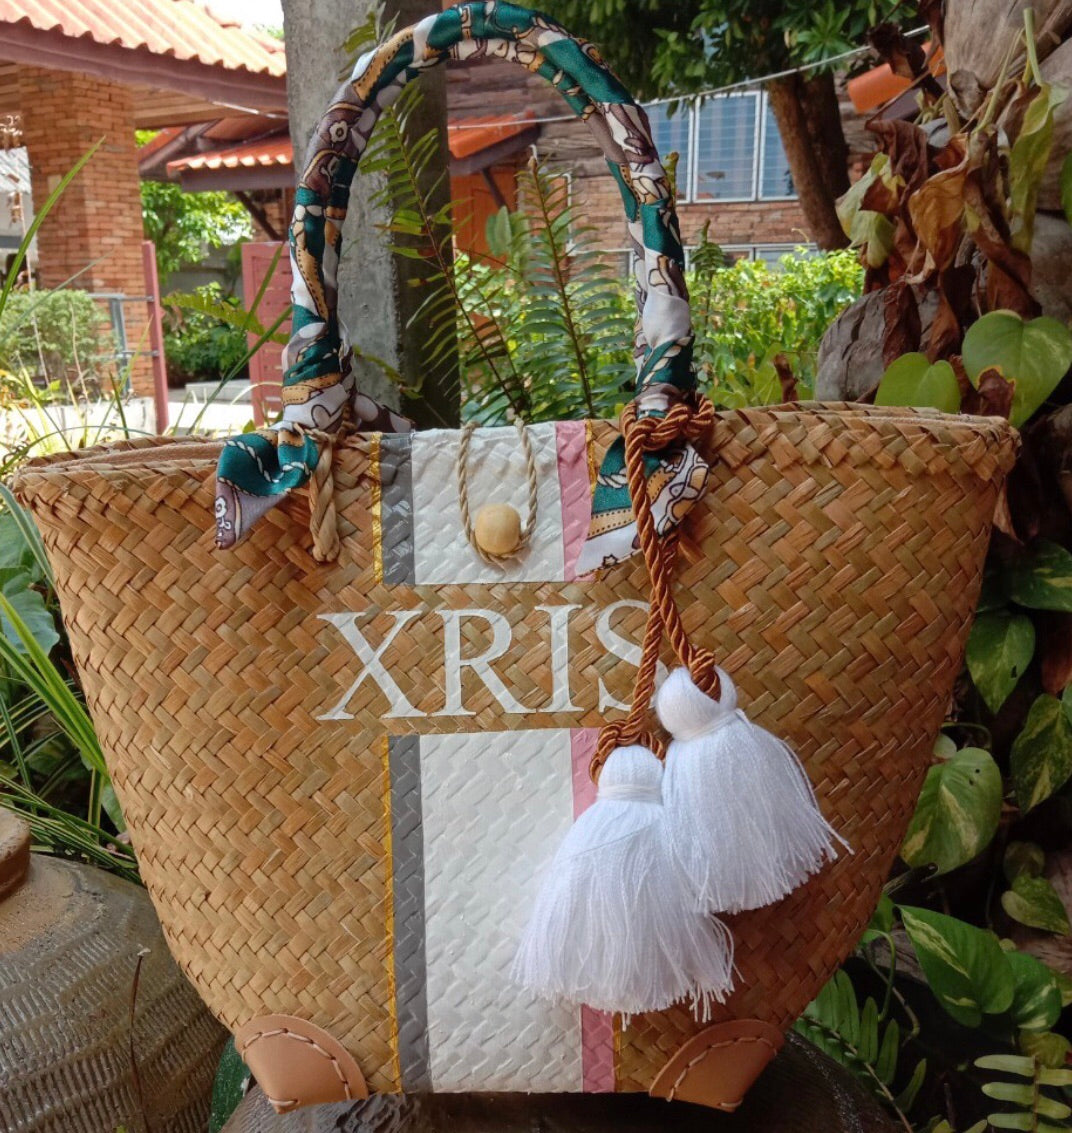 Dori Personalised Wicker Bag - Medium Tote Without Accessories